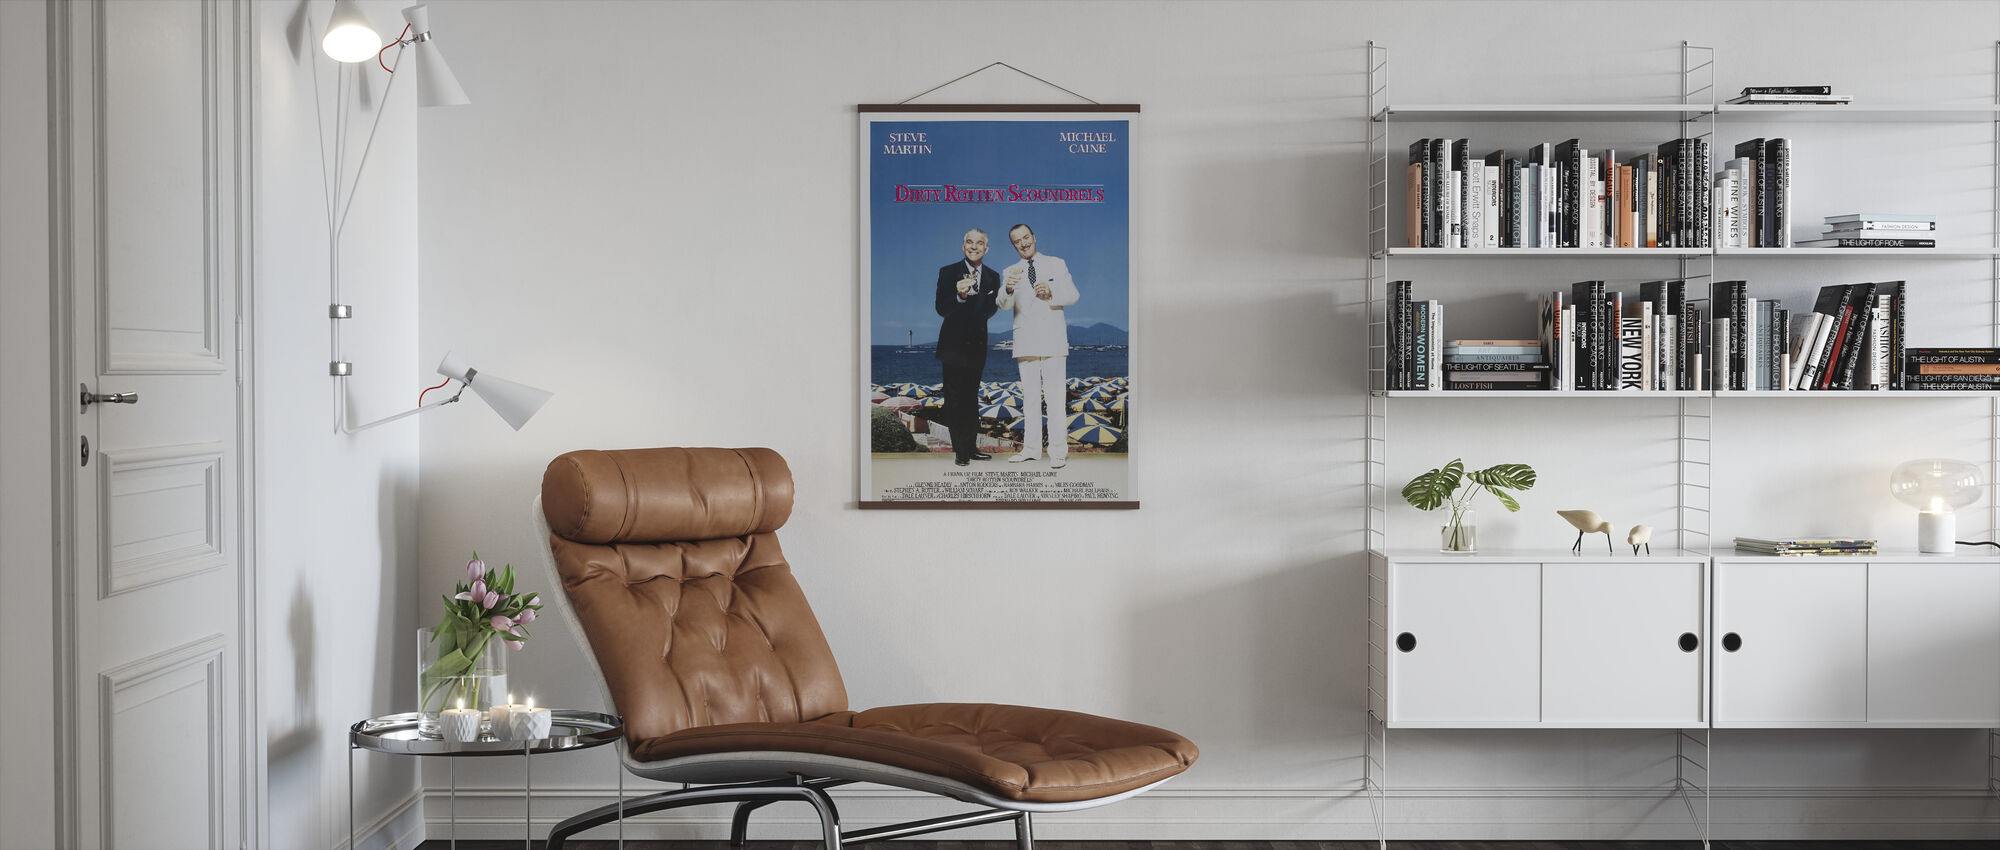 Dirty Rotten Scoundrels - Poster - Living Room